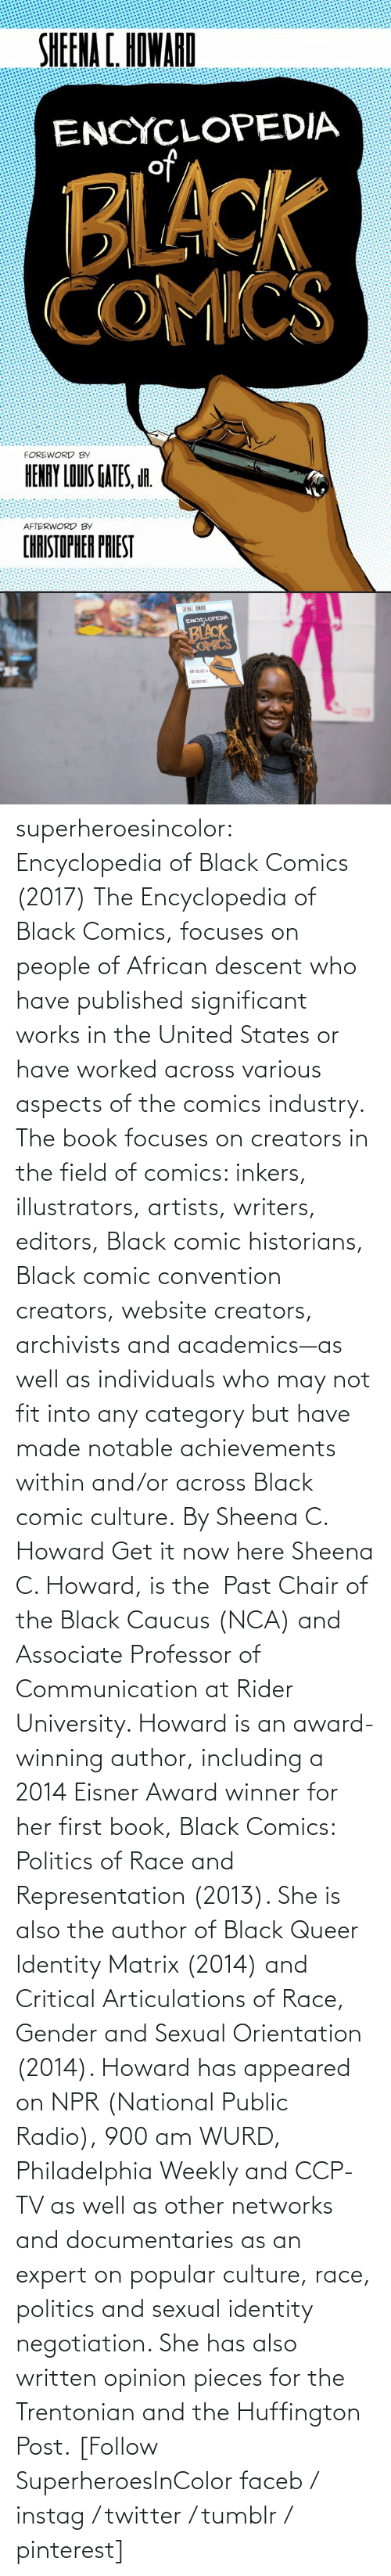 african: superheroesincolor: Encyclopedia of Black Comics (2017) The Encyclopedia of Black Comics, focuses on people of African descent who have published significant works in the United States or have worked across various aspects of the comics industry.  The book focuses on creators in the field of comics: inkers, illustrators, artists, writers, editors, Black comic historians, Black comic convention creators, website creators, archivists and academics—as well as individuals who may not fit into any category but have made notable achievements within and/or across Black comic culture. By Sheena C. Howard Get it now here  Sheena C. Howard, is the  Past Chair of the Black Caucus (NCA) and Associate Professor of Communication at Rider University. Howard is an award-winning author, including a 2014 Eisner Award winner for her first book, Black Comics: Politics of Race and Representation (2013). She is also the author of Black Queer Identity Matrix (2014) and Critical Articulations of Race, Gender and Sexual Orientation (2014). Howard has appeared on NPR (National Public Radio), 900 am WURD, Philadelphia Weekly and CCP-TV as well as other networks and documentaries as an expert on popular culture, race, politics and sexual identity negotiation. She has also written opinion pieces for the Trentonian and the Huffington Post.   [Follow SuperheroesInColor faceb / instag / twitter / tumblr / pinterest]